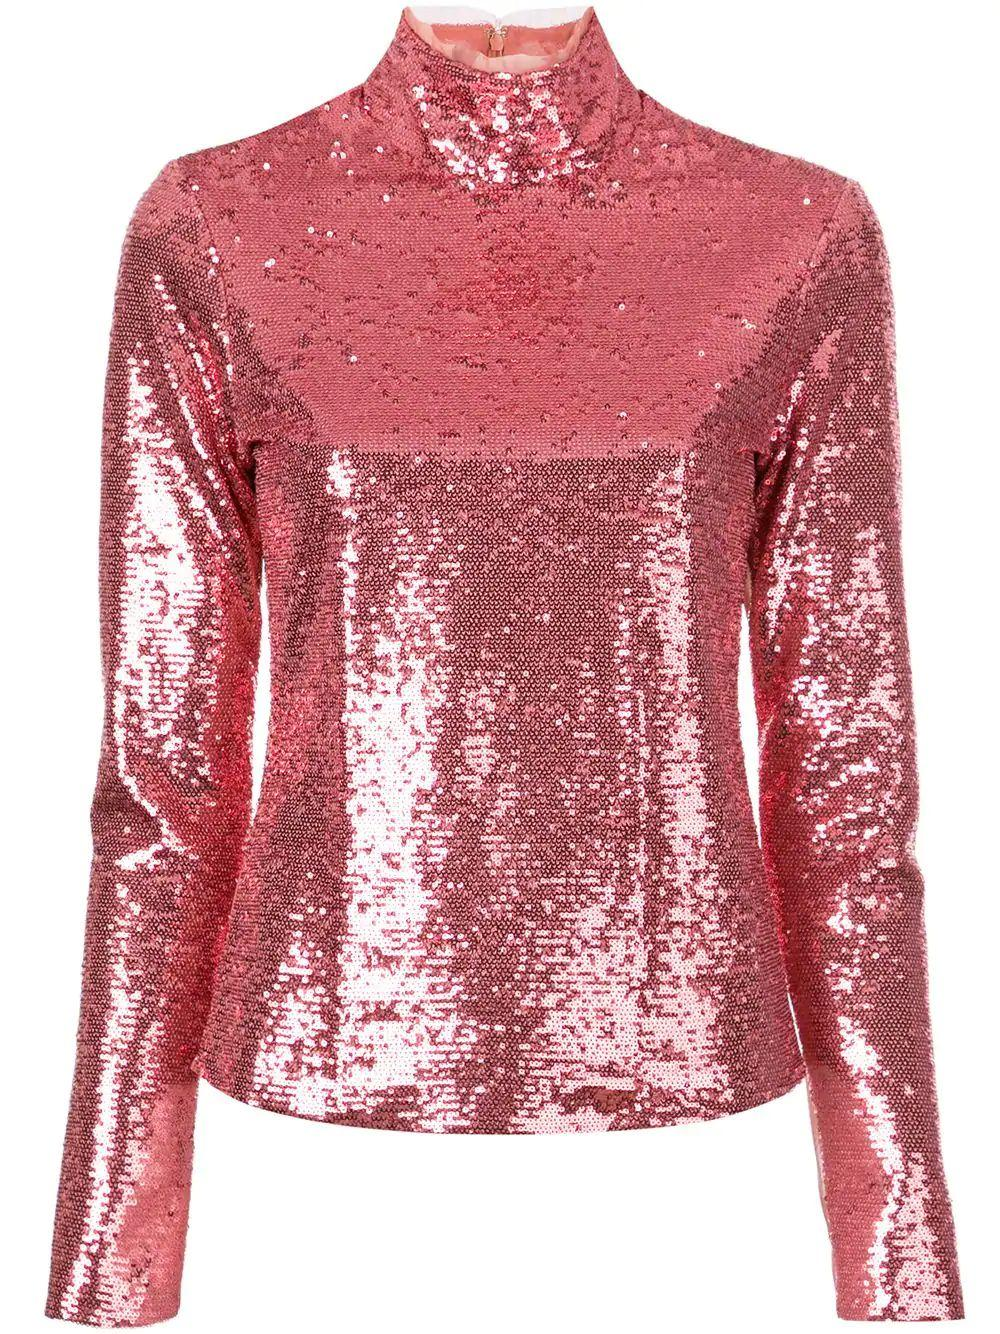 Joan Sequin Mock Neck Long Sleeve Top Item # ZW7022776Z